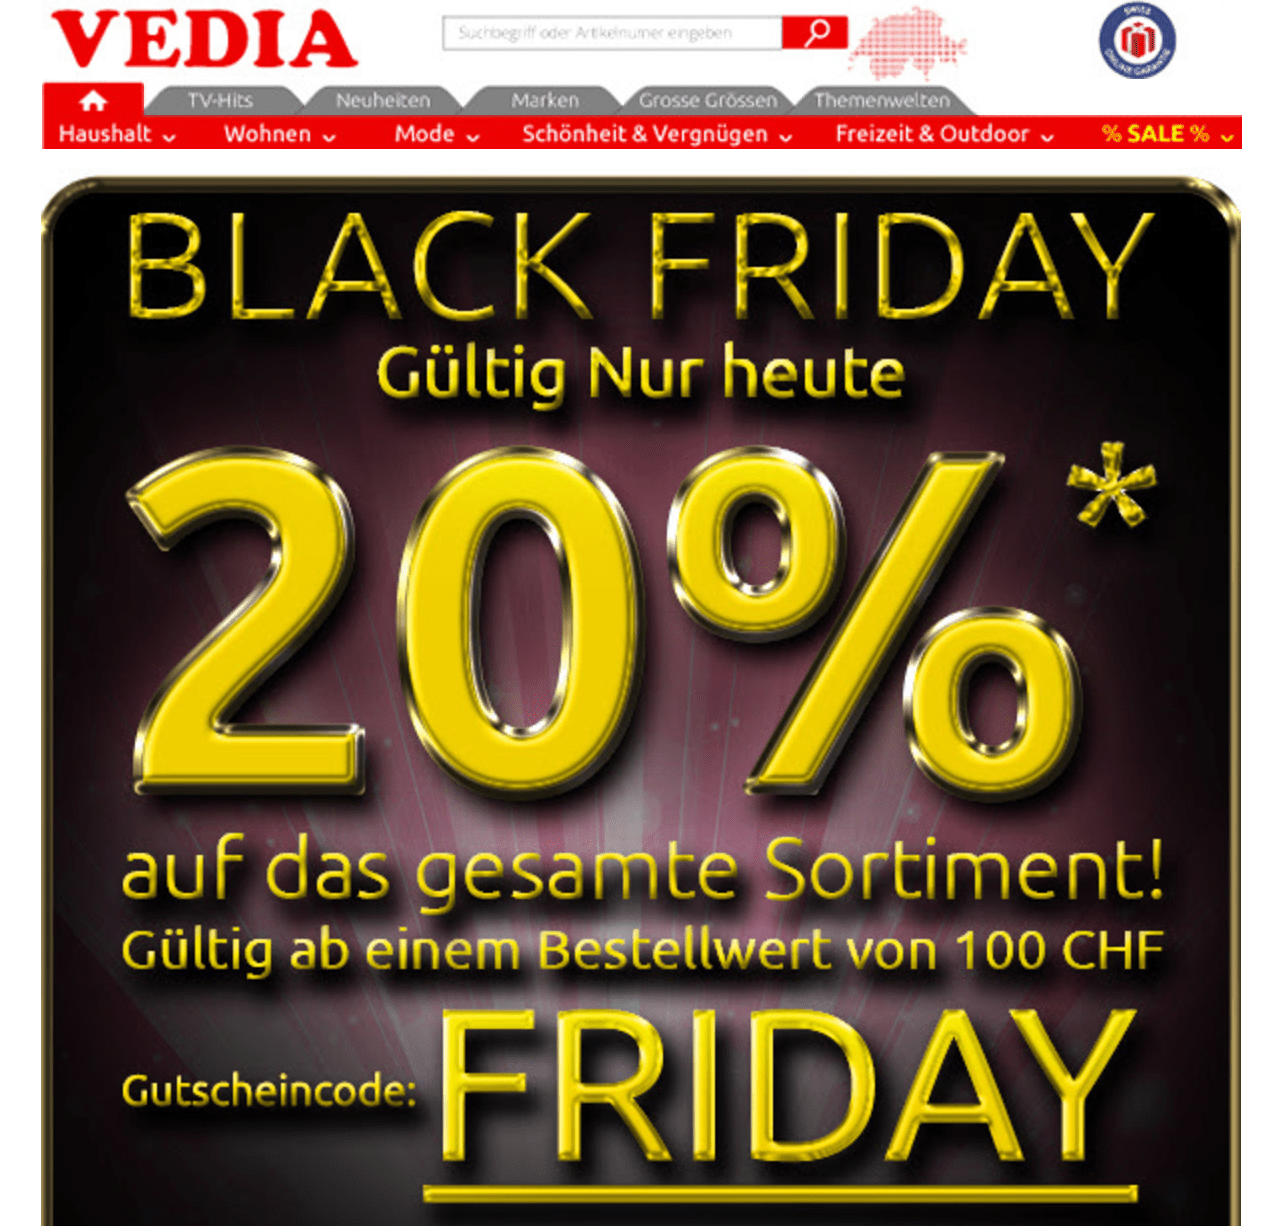 Black Friday Wann Vedia Dealübersicht Zum Black Friday 2019 Und Cyber Monday